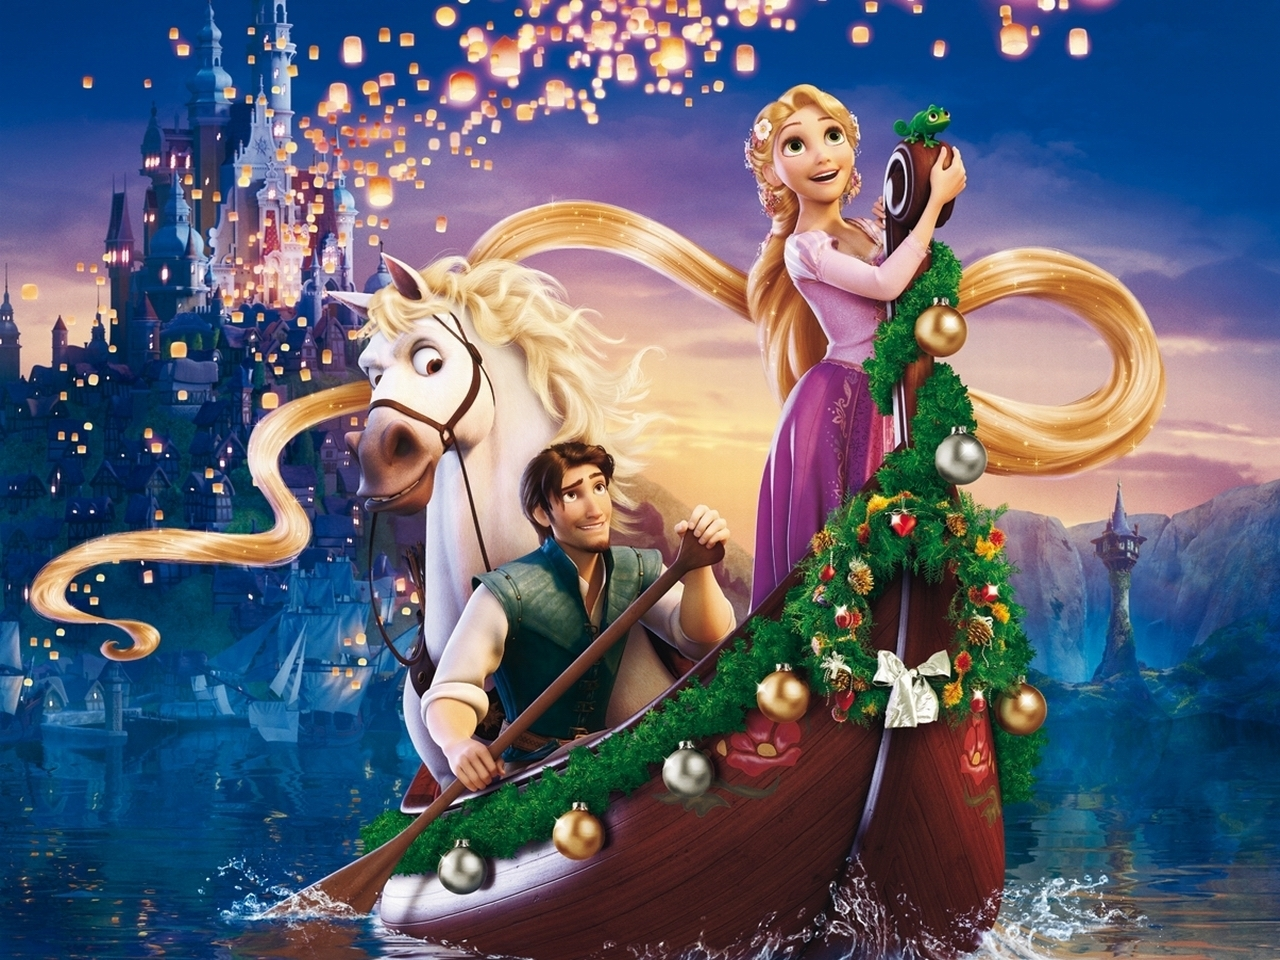 you can download free of cost all our new year disney wallpapers you can use our free wallpapers in high resolution for you pc desktop laptop